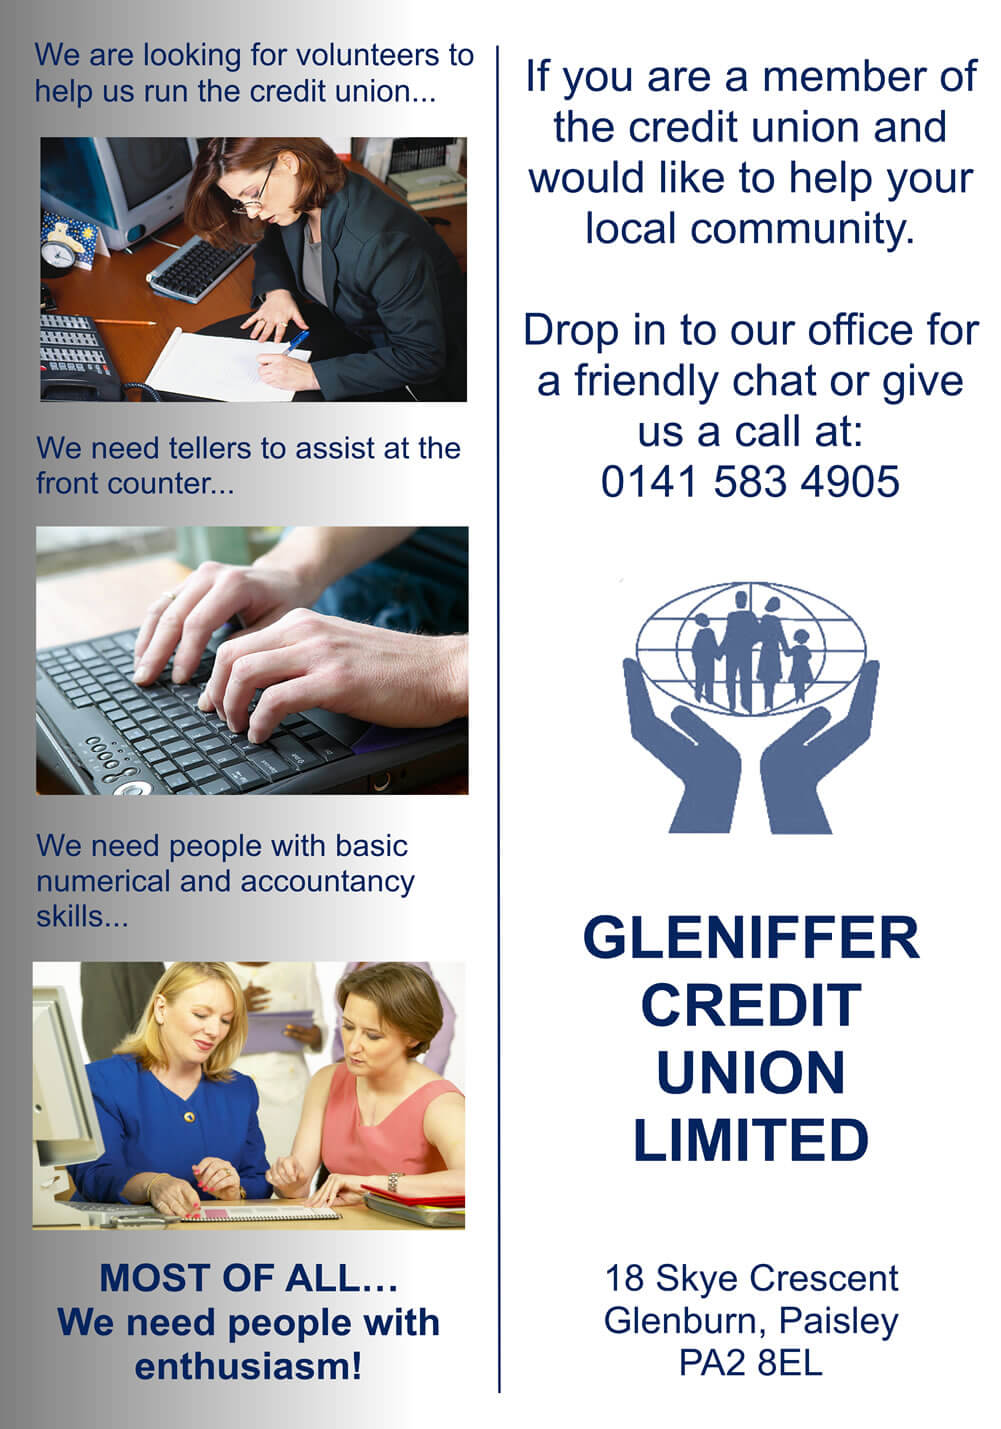 We are looking for volunteers at Gleniffer Credit Union